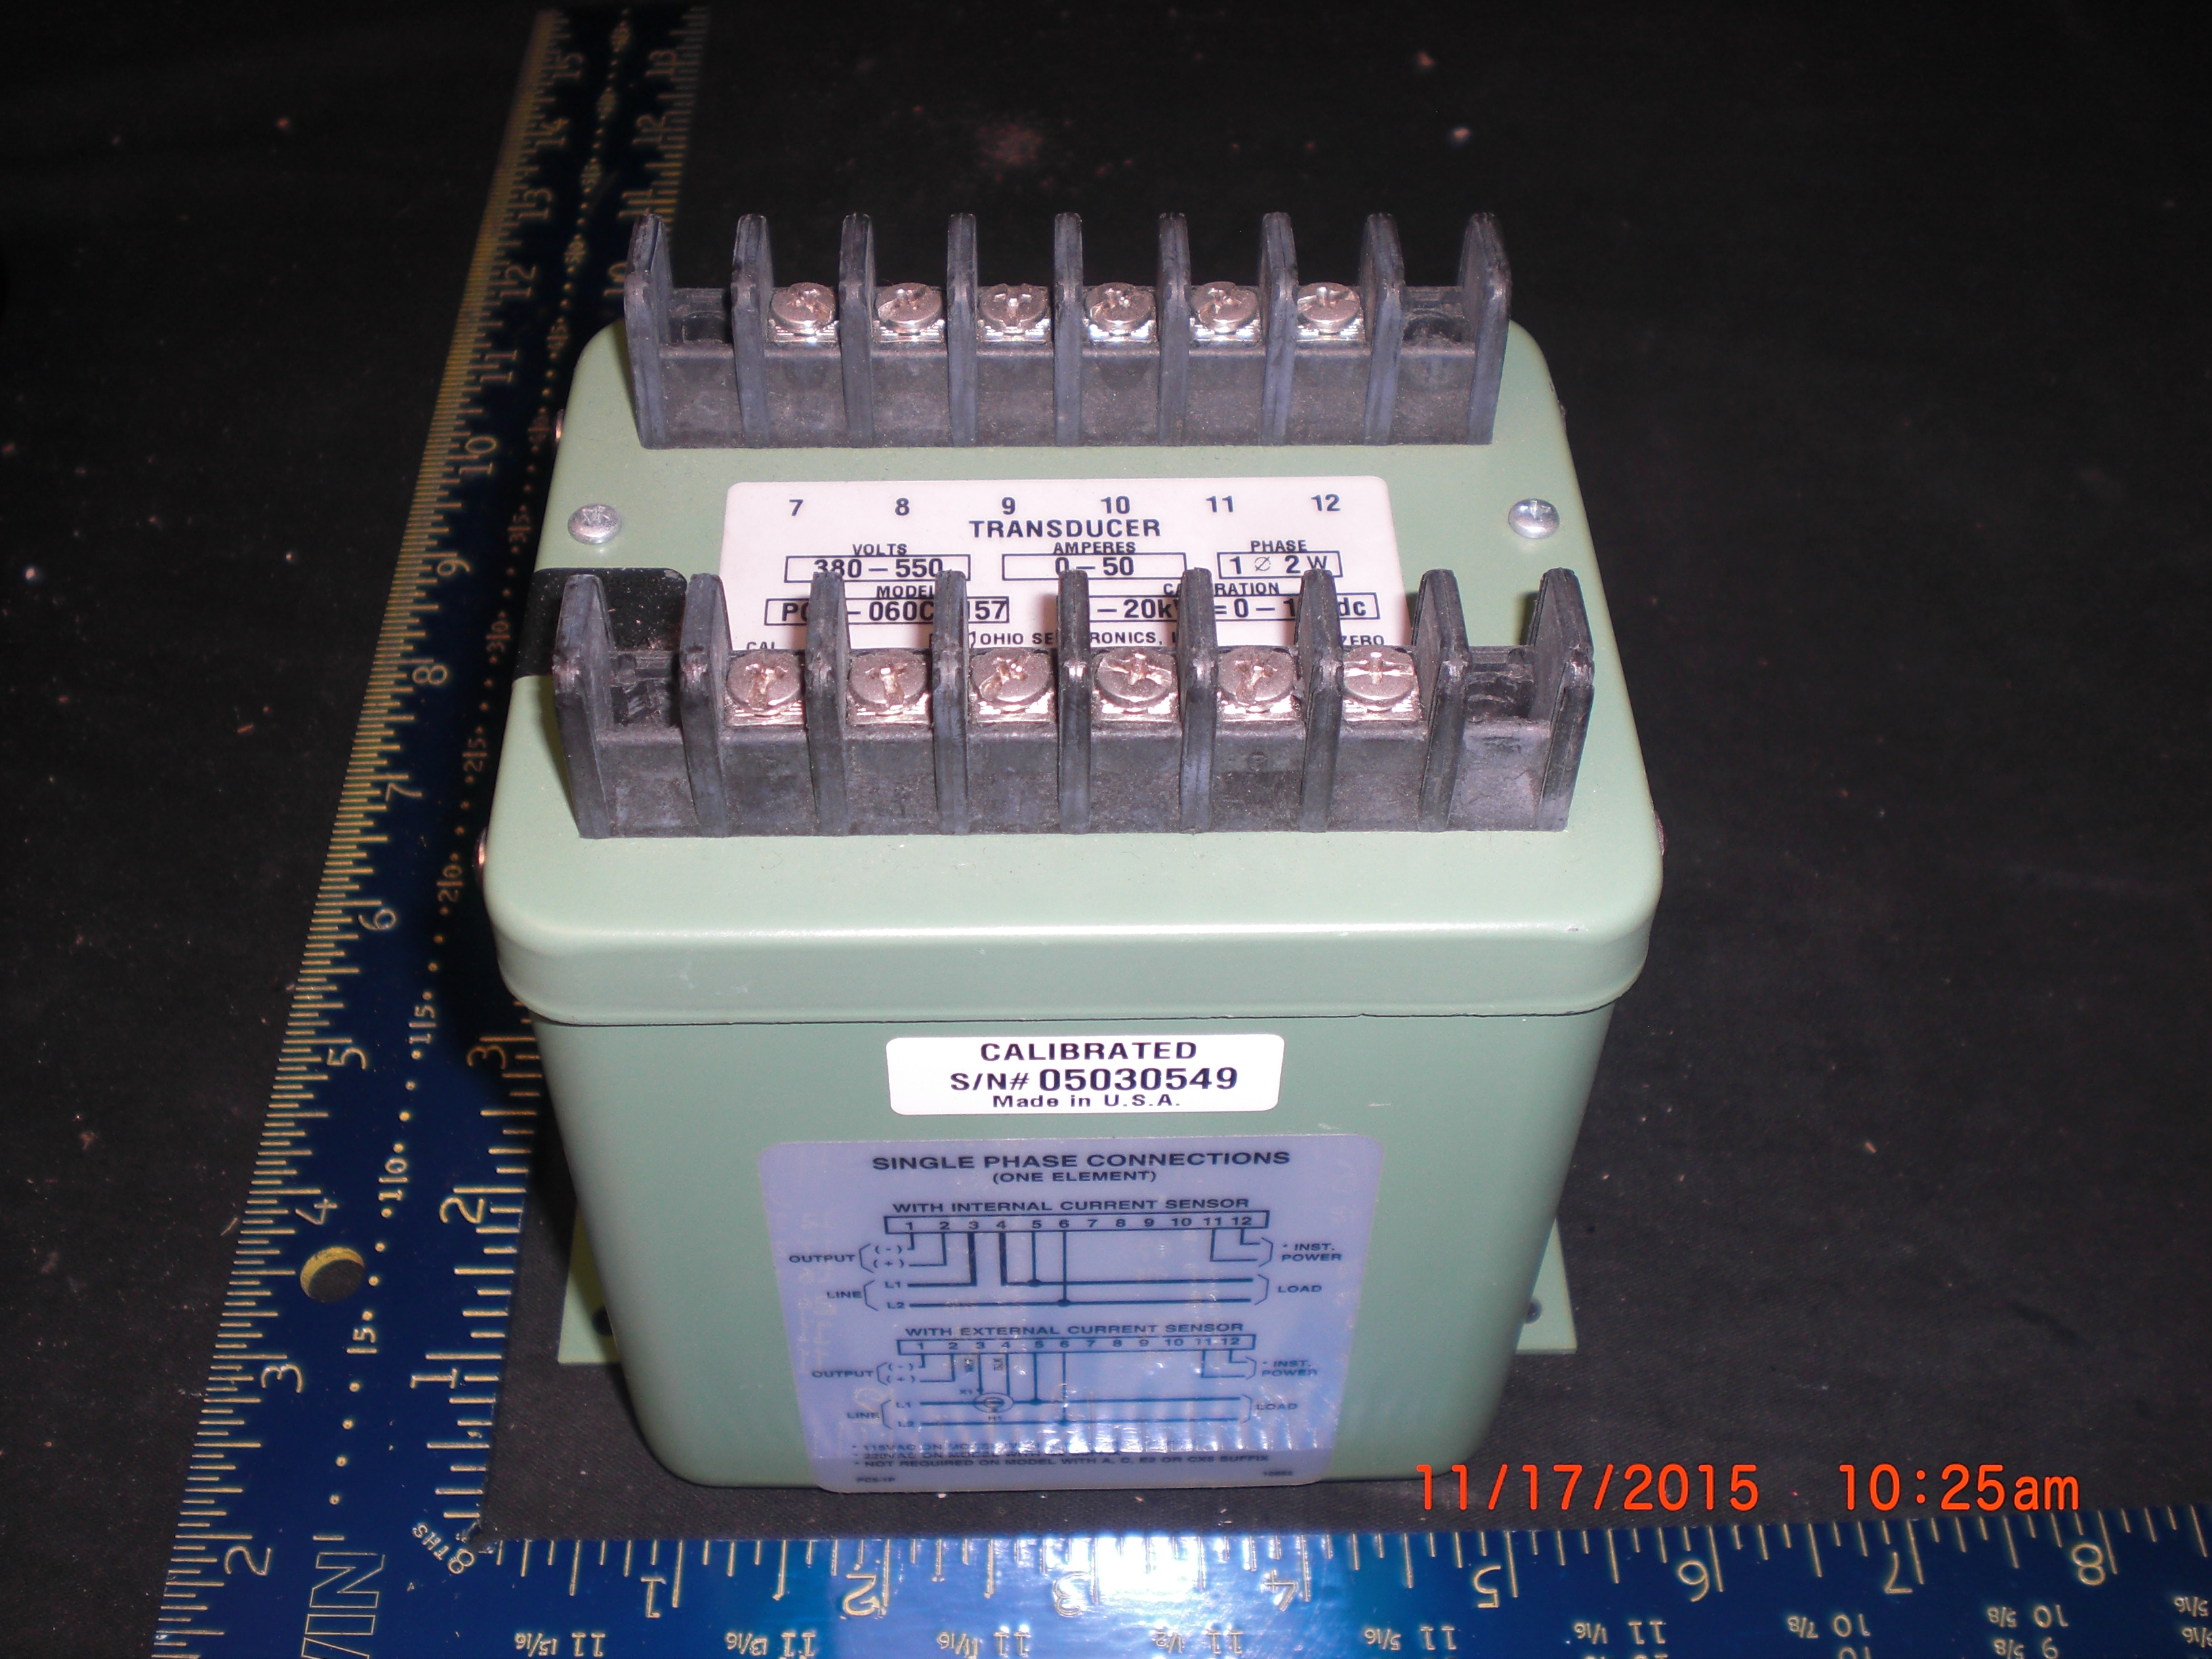 Transducer AC WATT Ohio Semitronics PC-060CY157  Includes Phase-Fired & Zero-Crossing